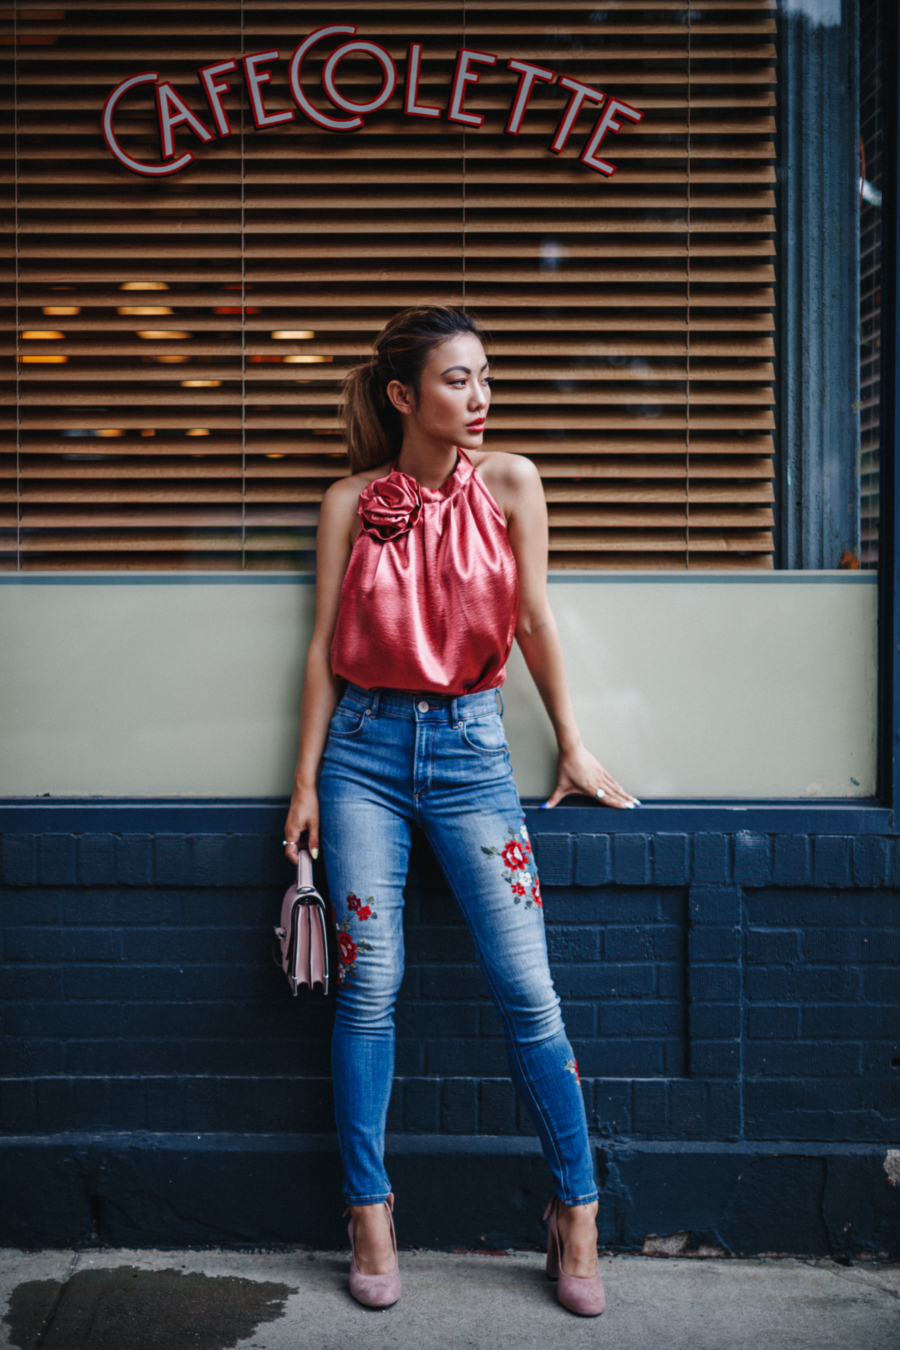 Classic Denim Styles With a Twist - Embroidered jeans // Notjessfashion.com